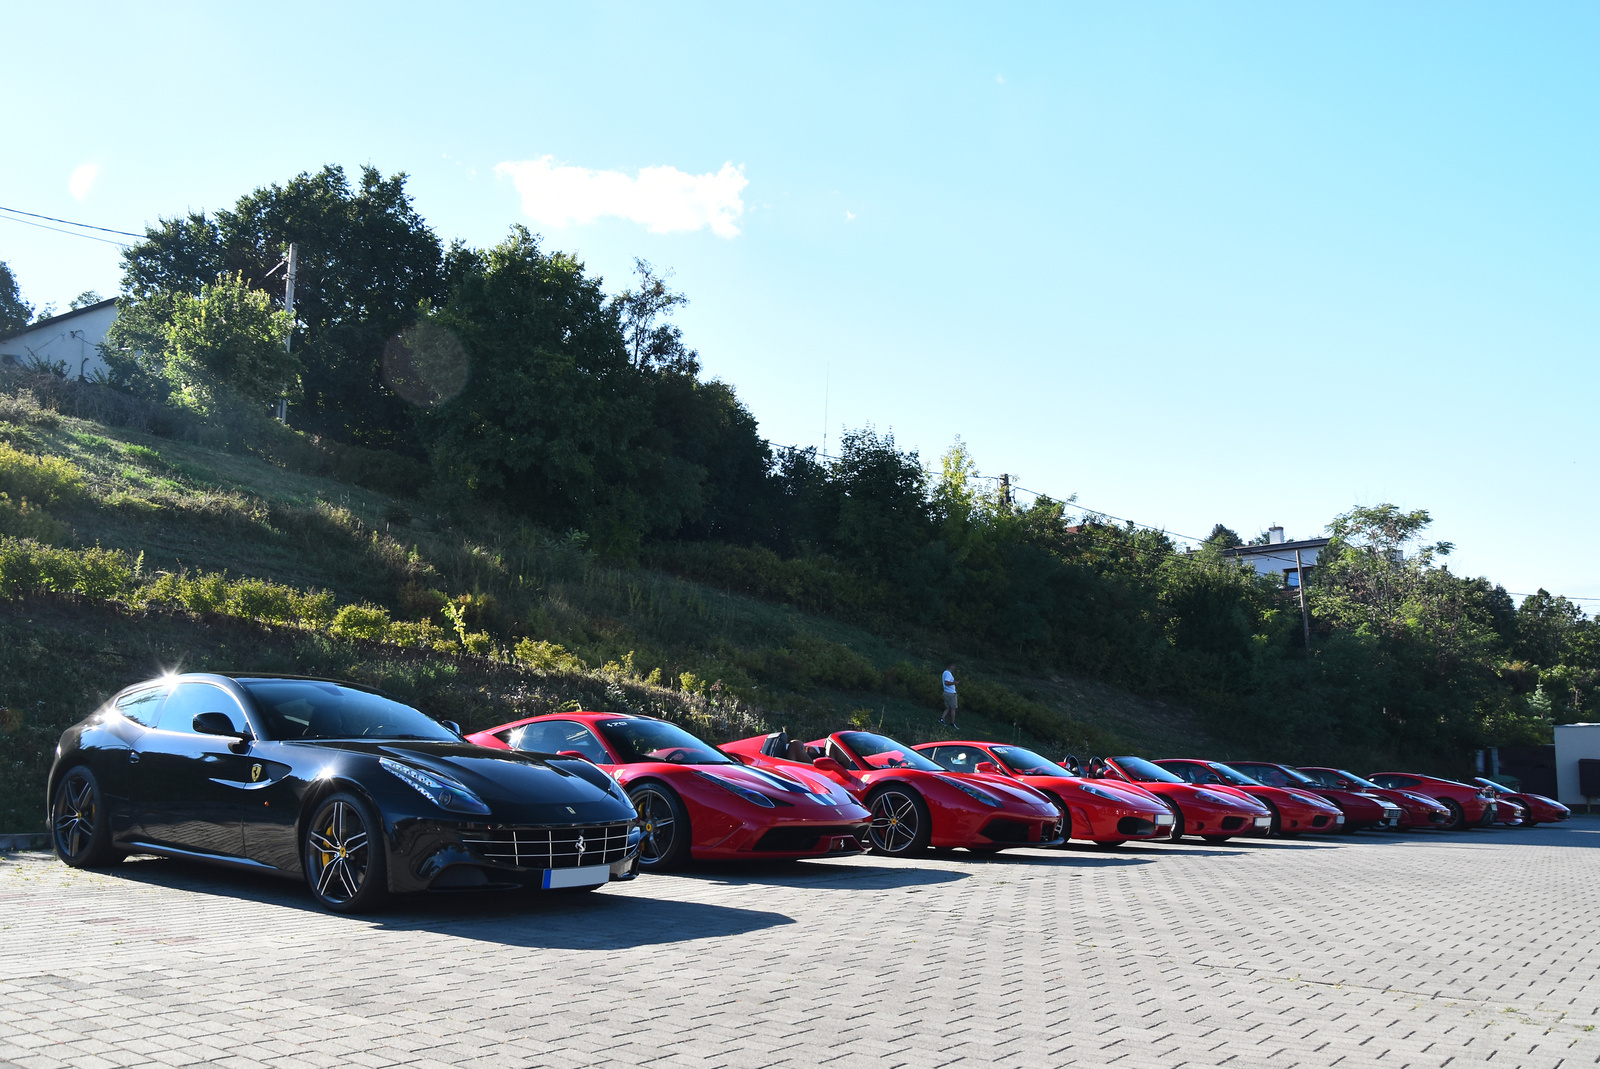 Ferrari Owners' Club Hungary